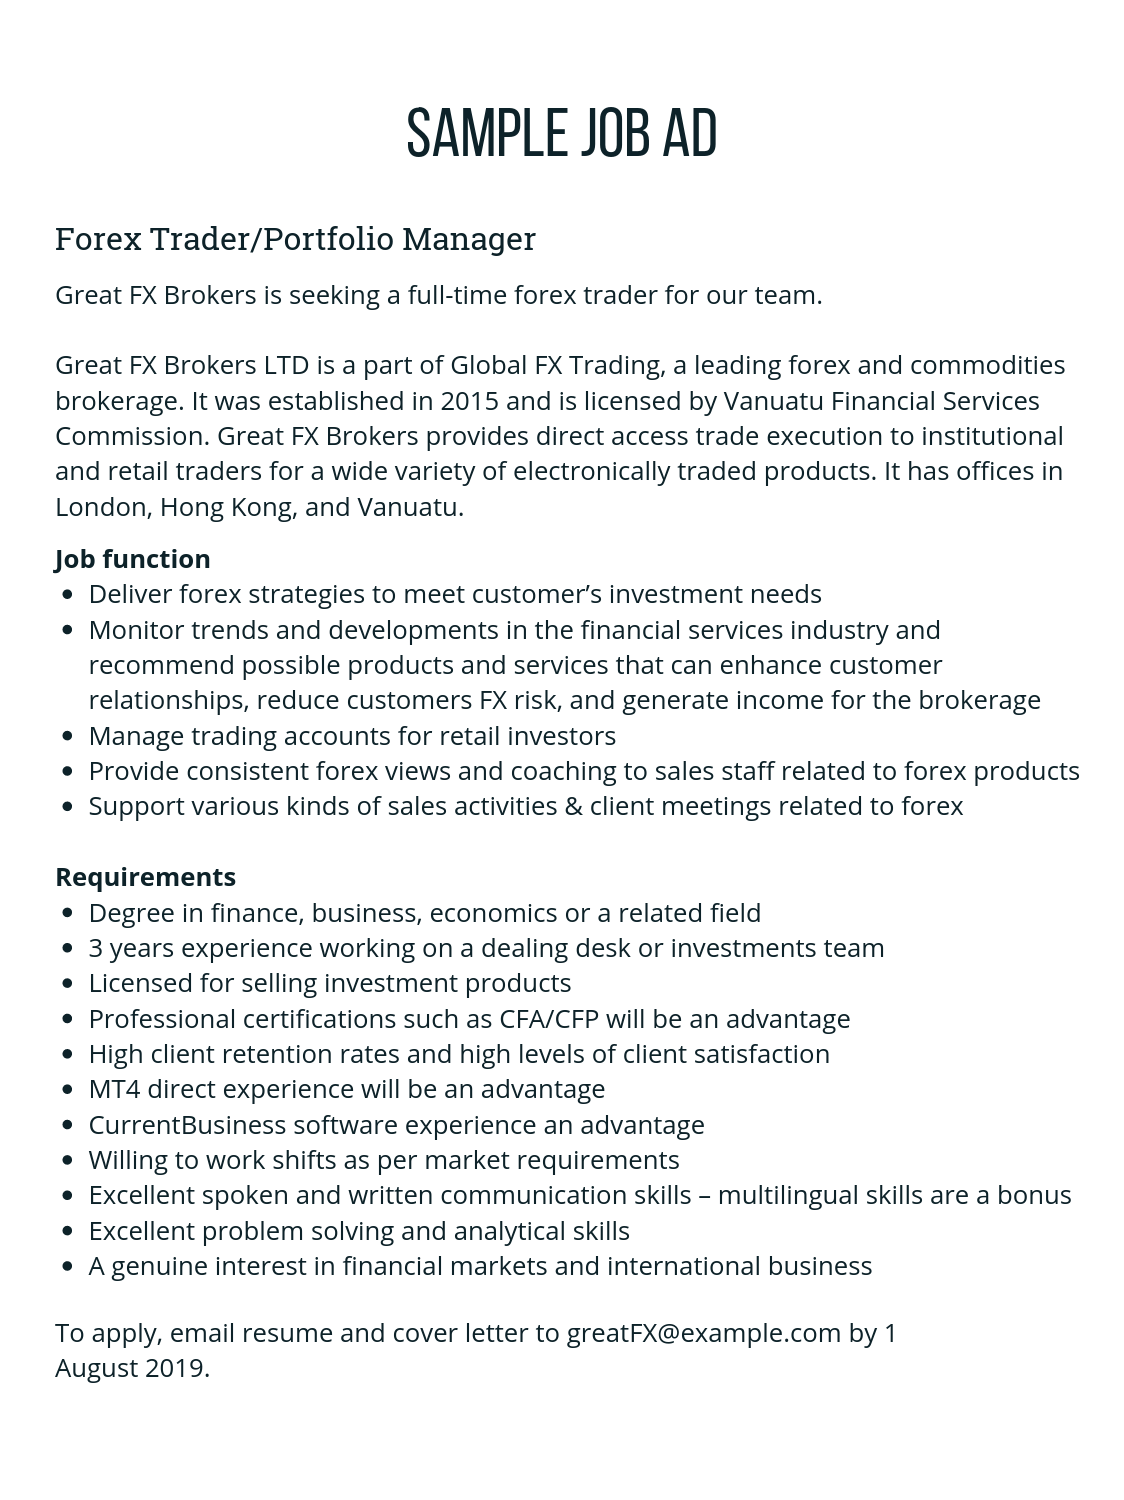 Doc Descargar CurrentDesk Forex Job Ad Templates | CurrentDesk